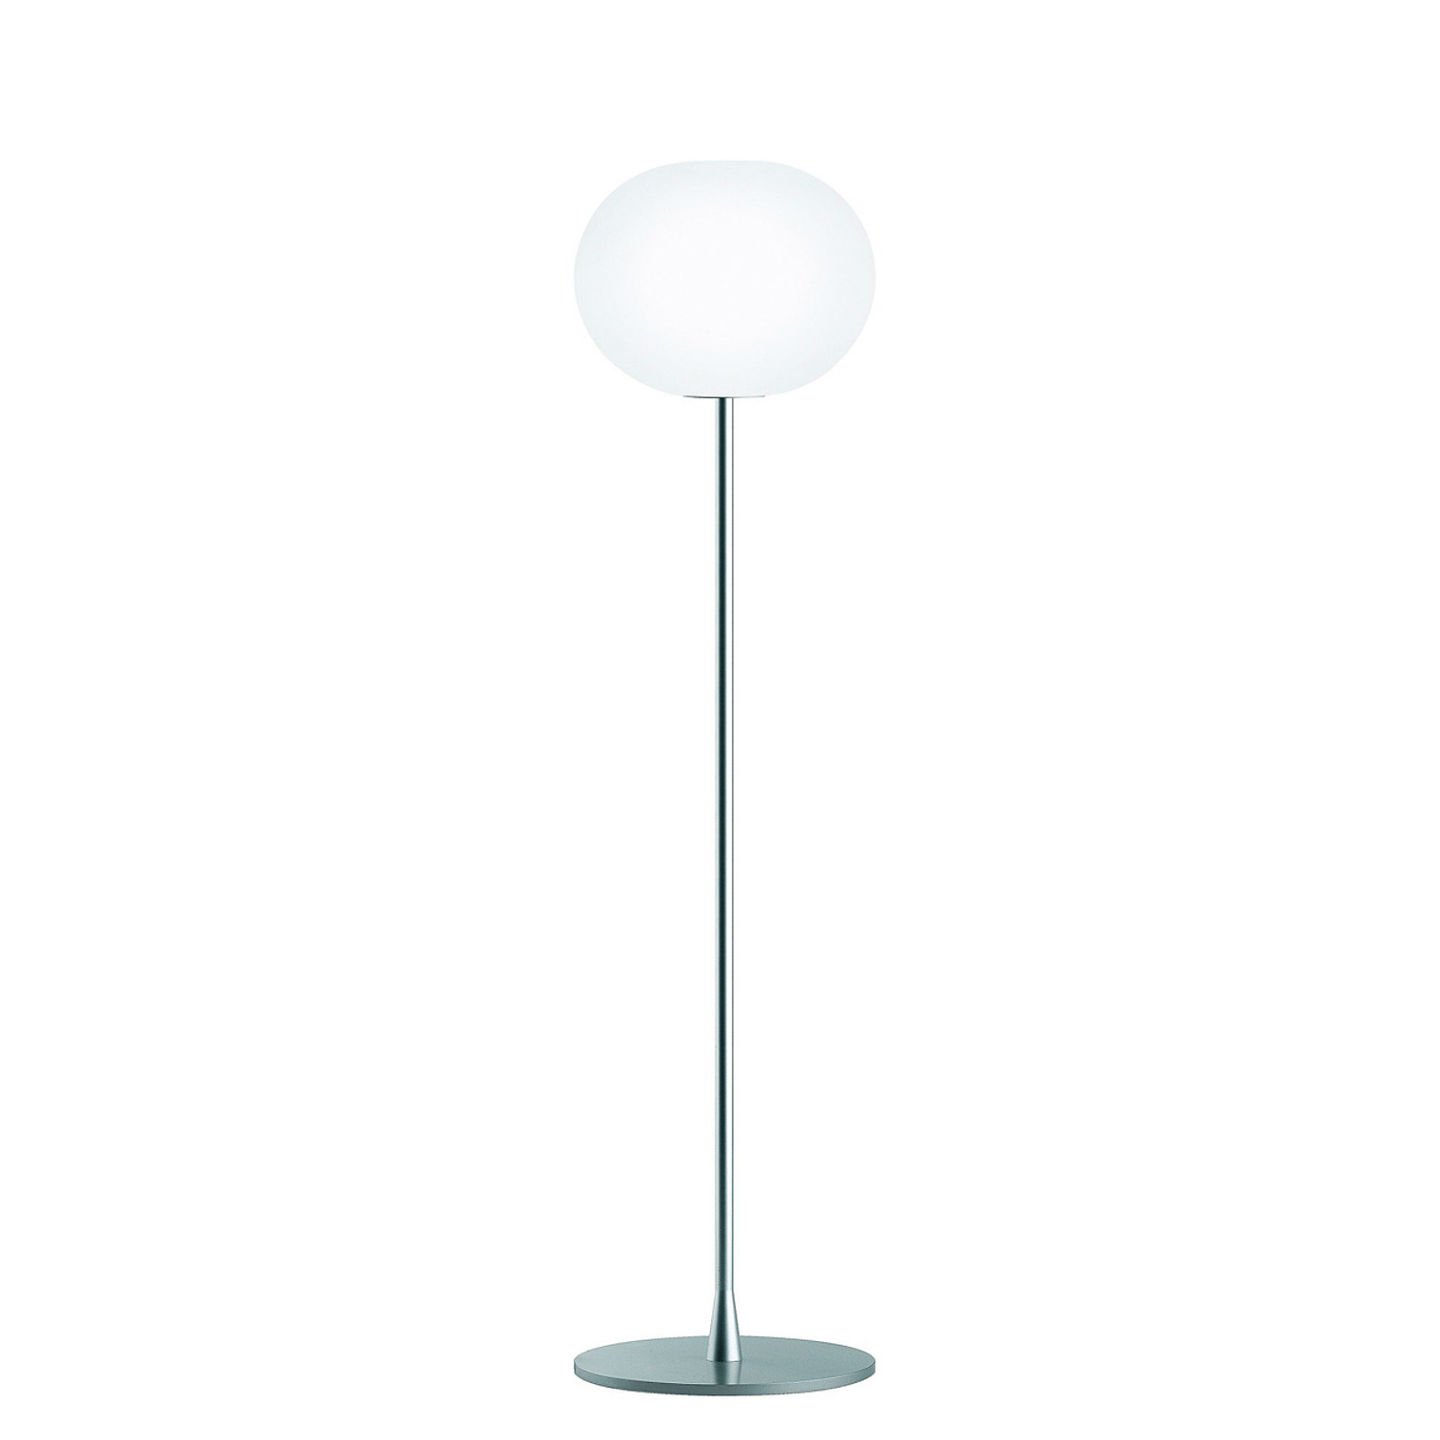 Glo Ball F1 Floor Lamp 135cm E27 150W - Silver mate